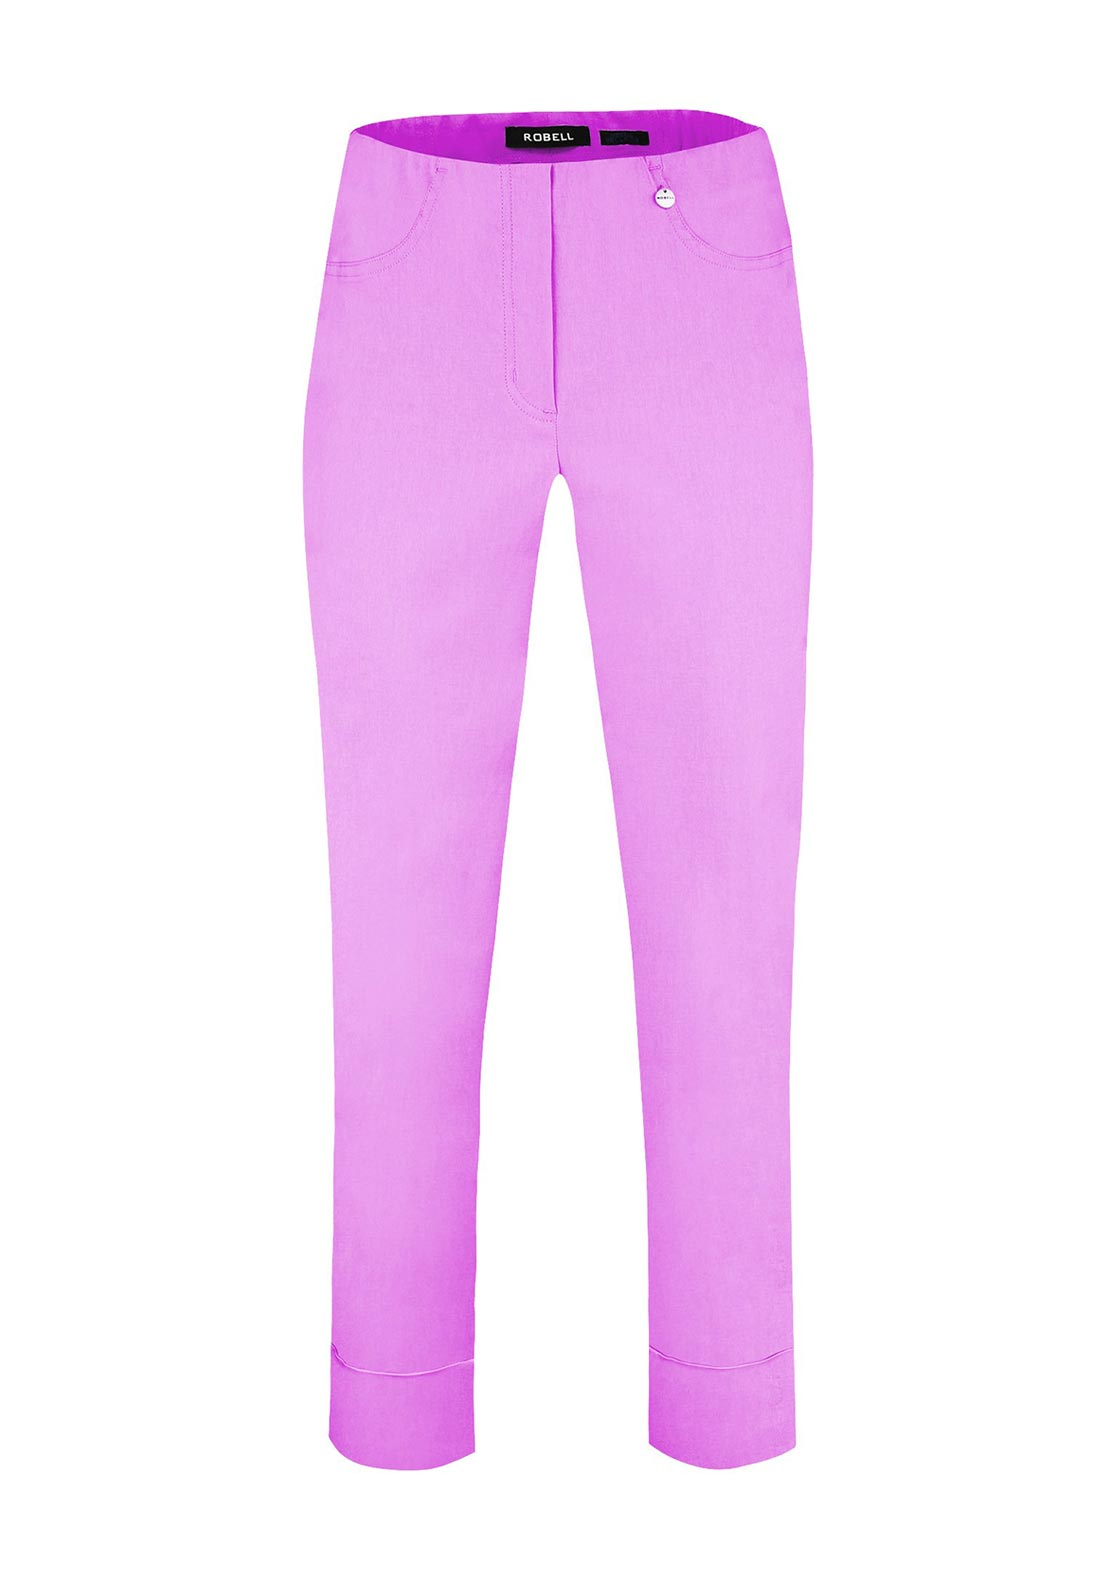 Robell Bella 09 Turn Up Ankle Grazer Trousers, Wild Rose Pink